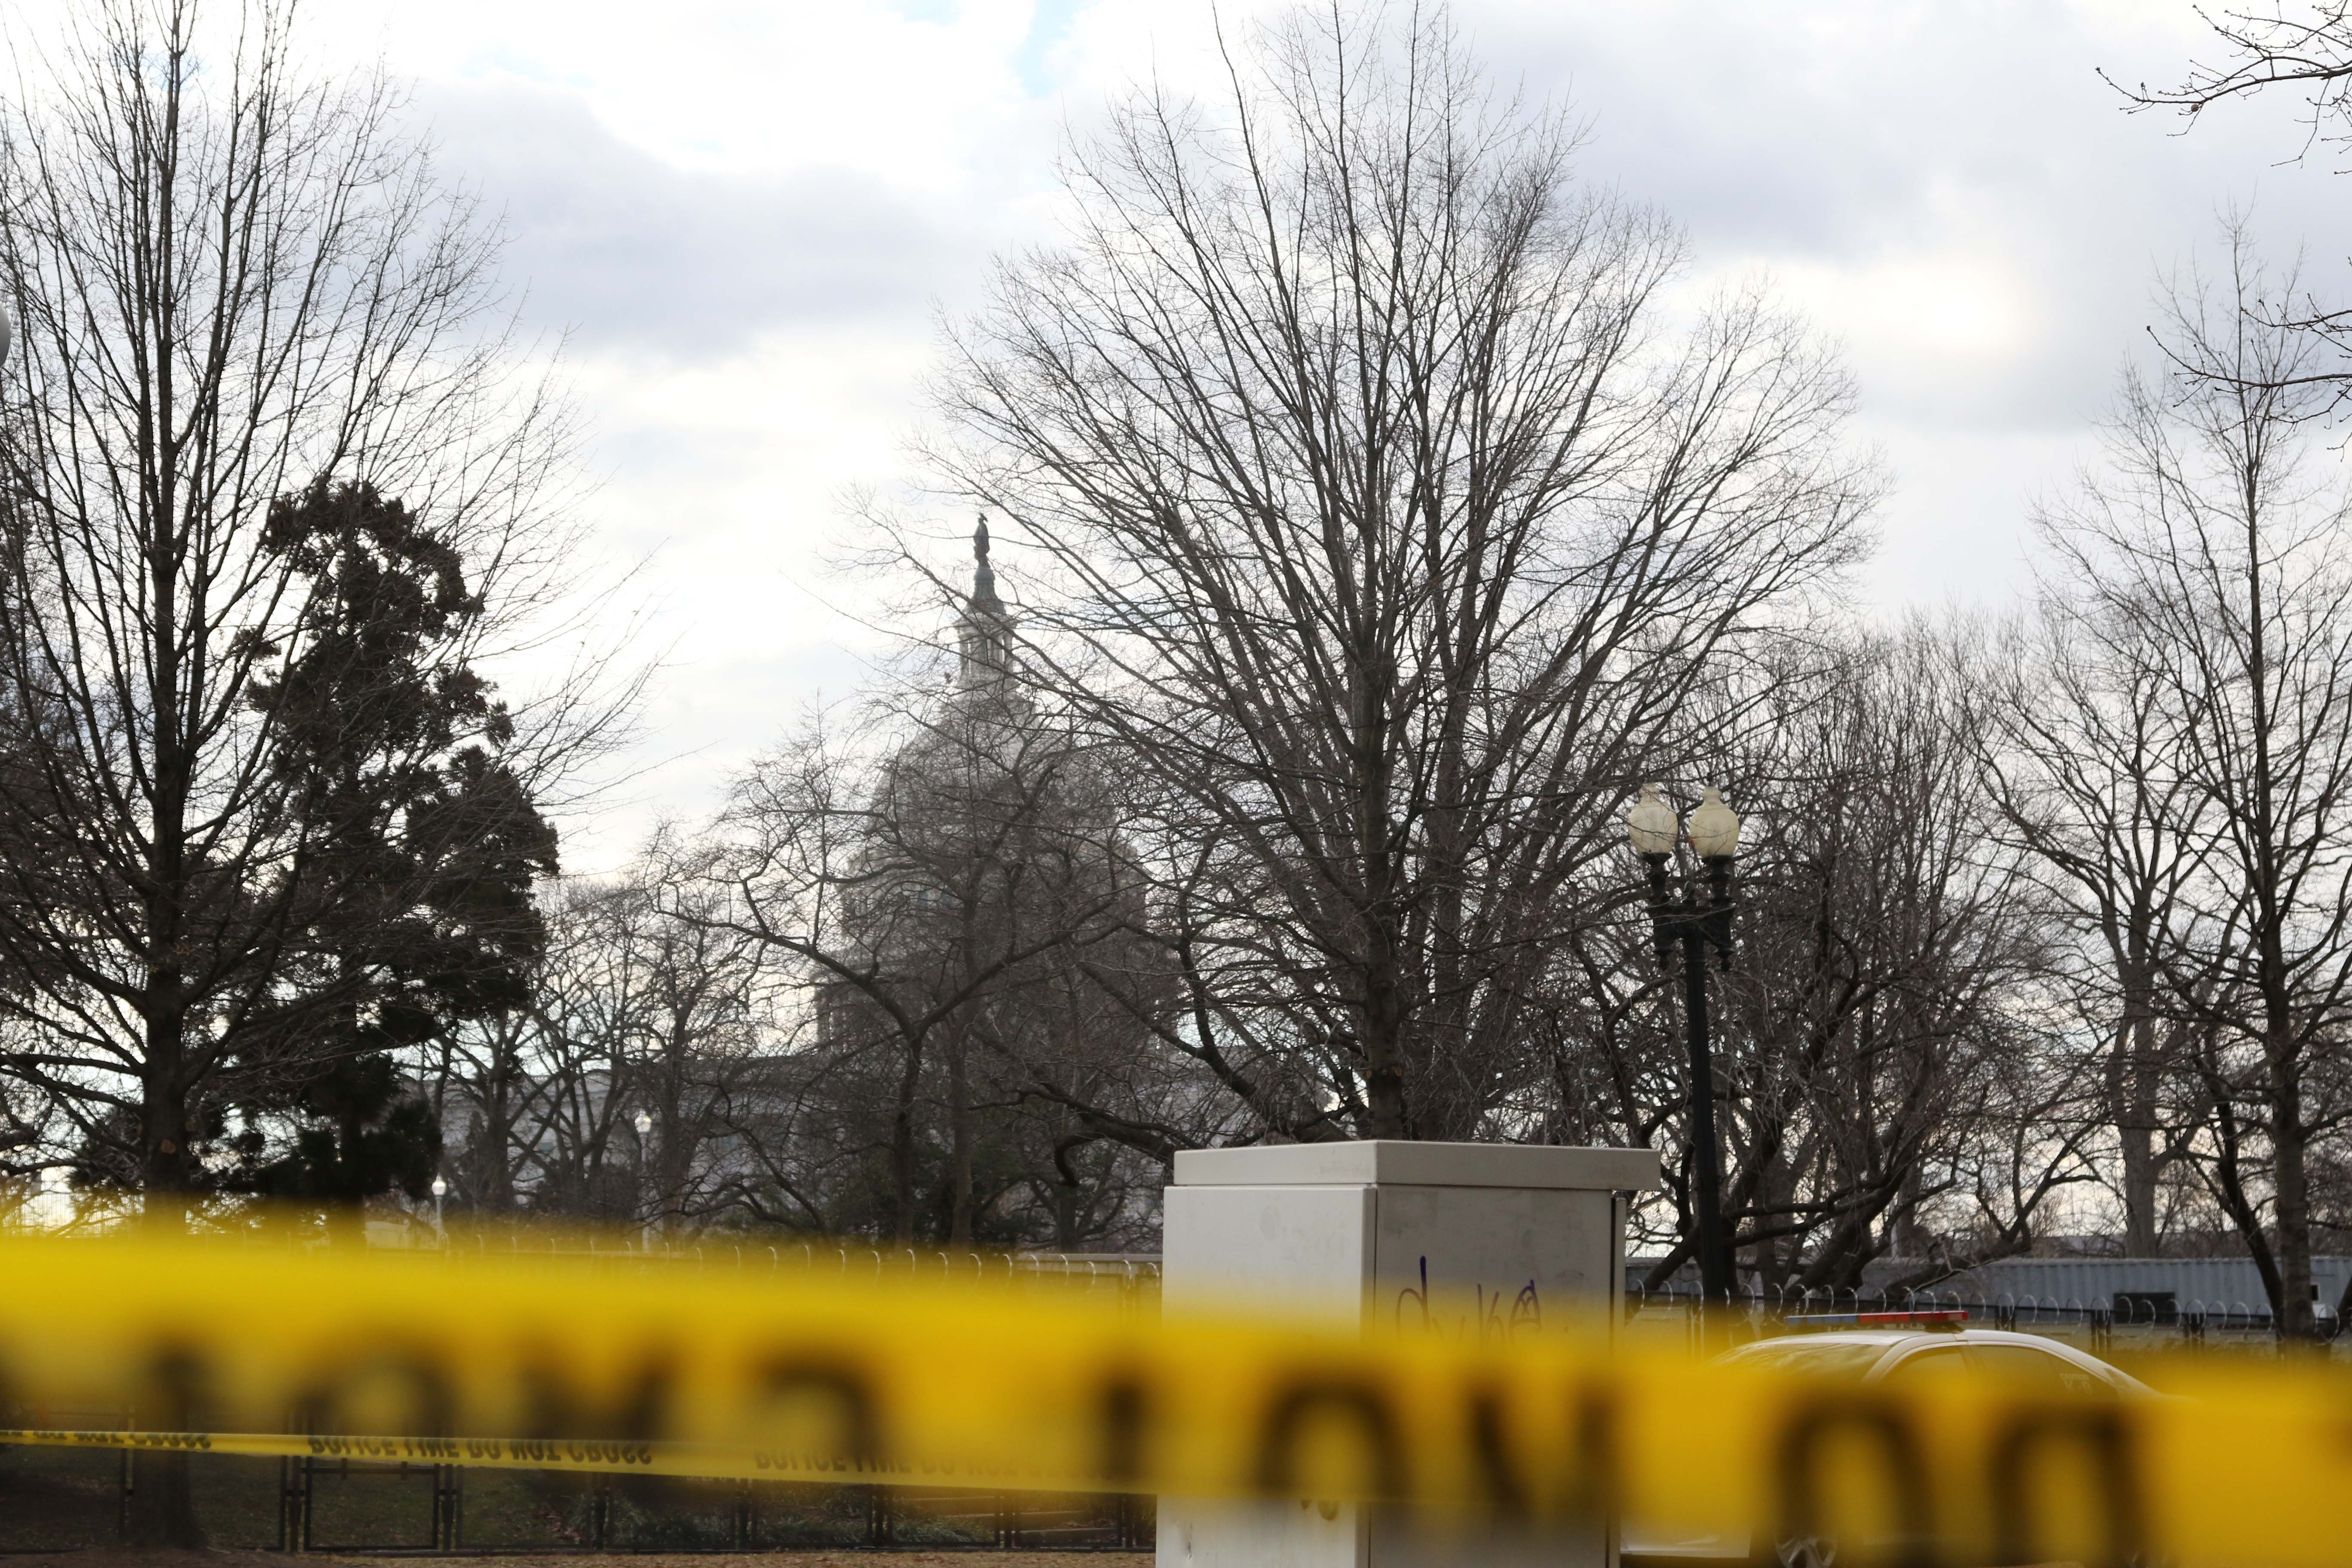 The top of the US Capitol building seen from behind fencing and caution tape.